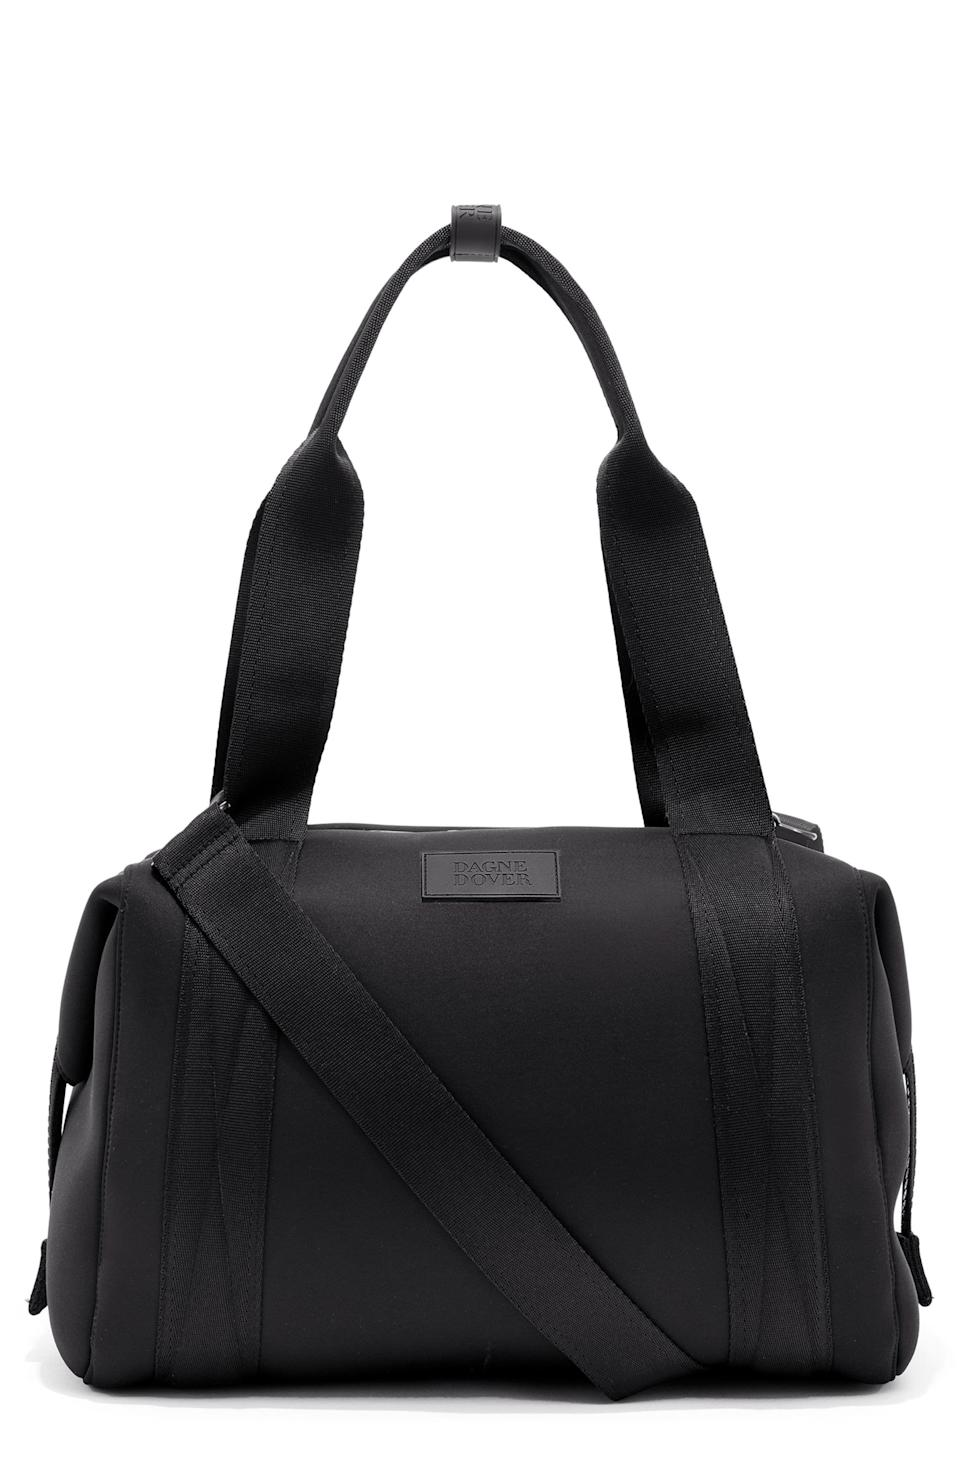 """<p><strong>Dagne Dover</strong></p><p>nordstrom.com</p><p><strong>$155.00</strong></p><p><a href=""""https://go.redirectingat.com?id=74968X1596630&url=https%3A%2F%2Fwww.nordstrom.com%2Fs%2Fdagne-dover-medium-landon-neoprene-carryall-duffle-bag%2F5327370&sref=https%3A%2F%2Fwww.harpersbazaar.com%2Fbeauty%2Fhealth%2Fg23900366%2Fbest-fitness-gifts-ideas%2F"""" rel=""""nofollow noopener"""" target=""""_blank"""" data-ylk=""""slk:Shop Now"""" class=""""link rapid-noclick-resp"""">Shop Now</a></p><p>Not only does this neoprene duffel look good, it also has a zillion compartments to store everything one could possibly need to work out—including a removable shoe bag.</p>"""